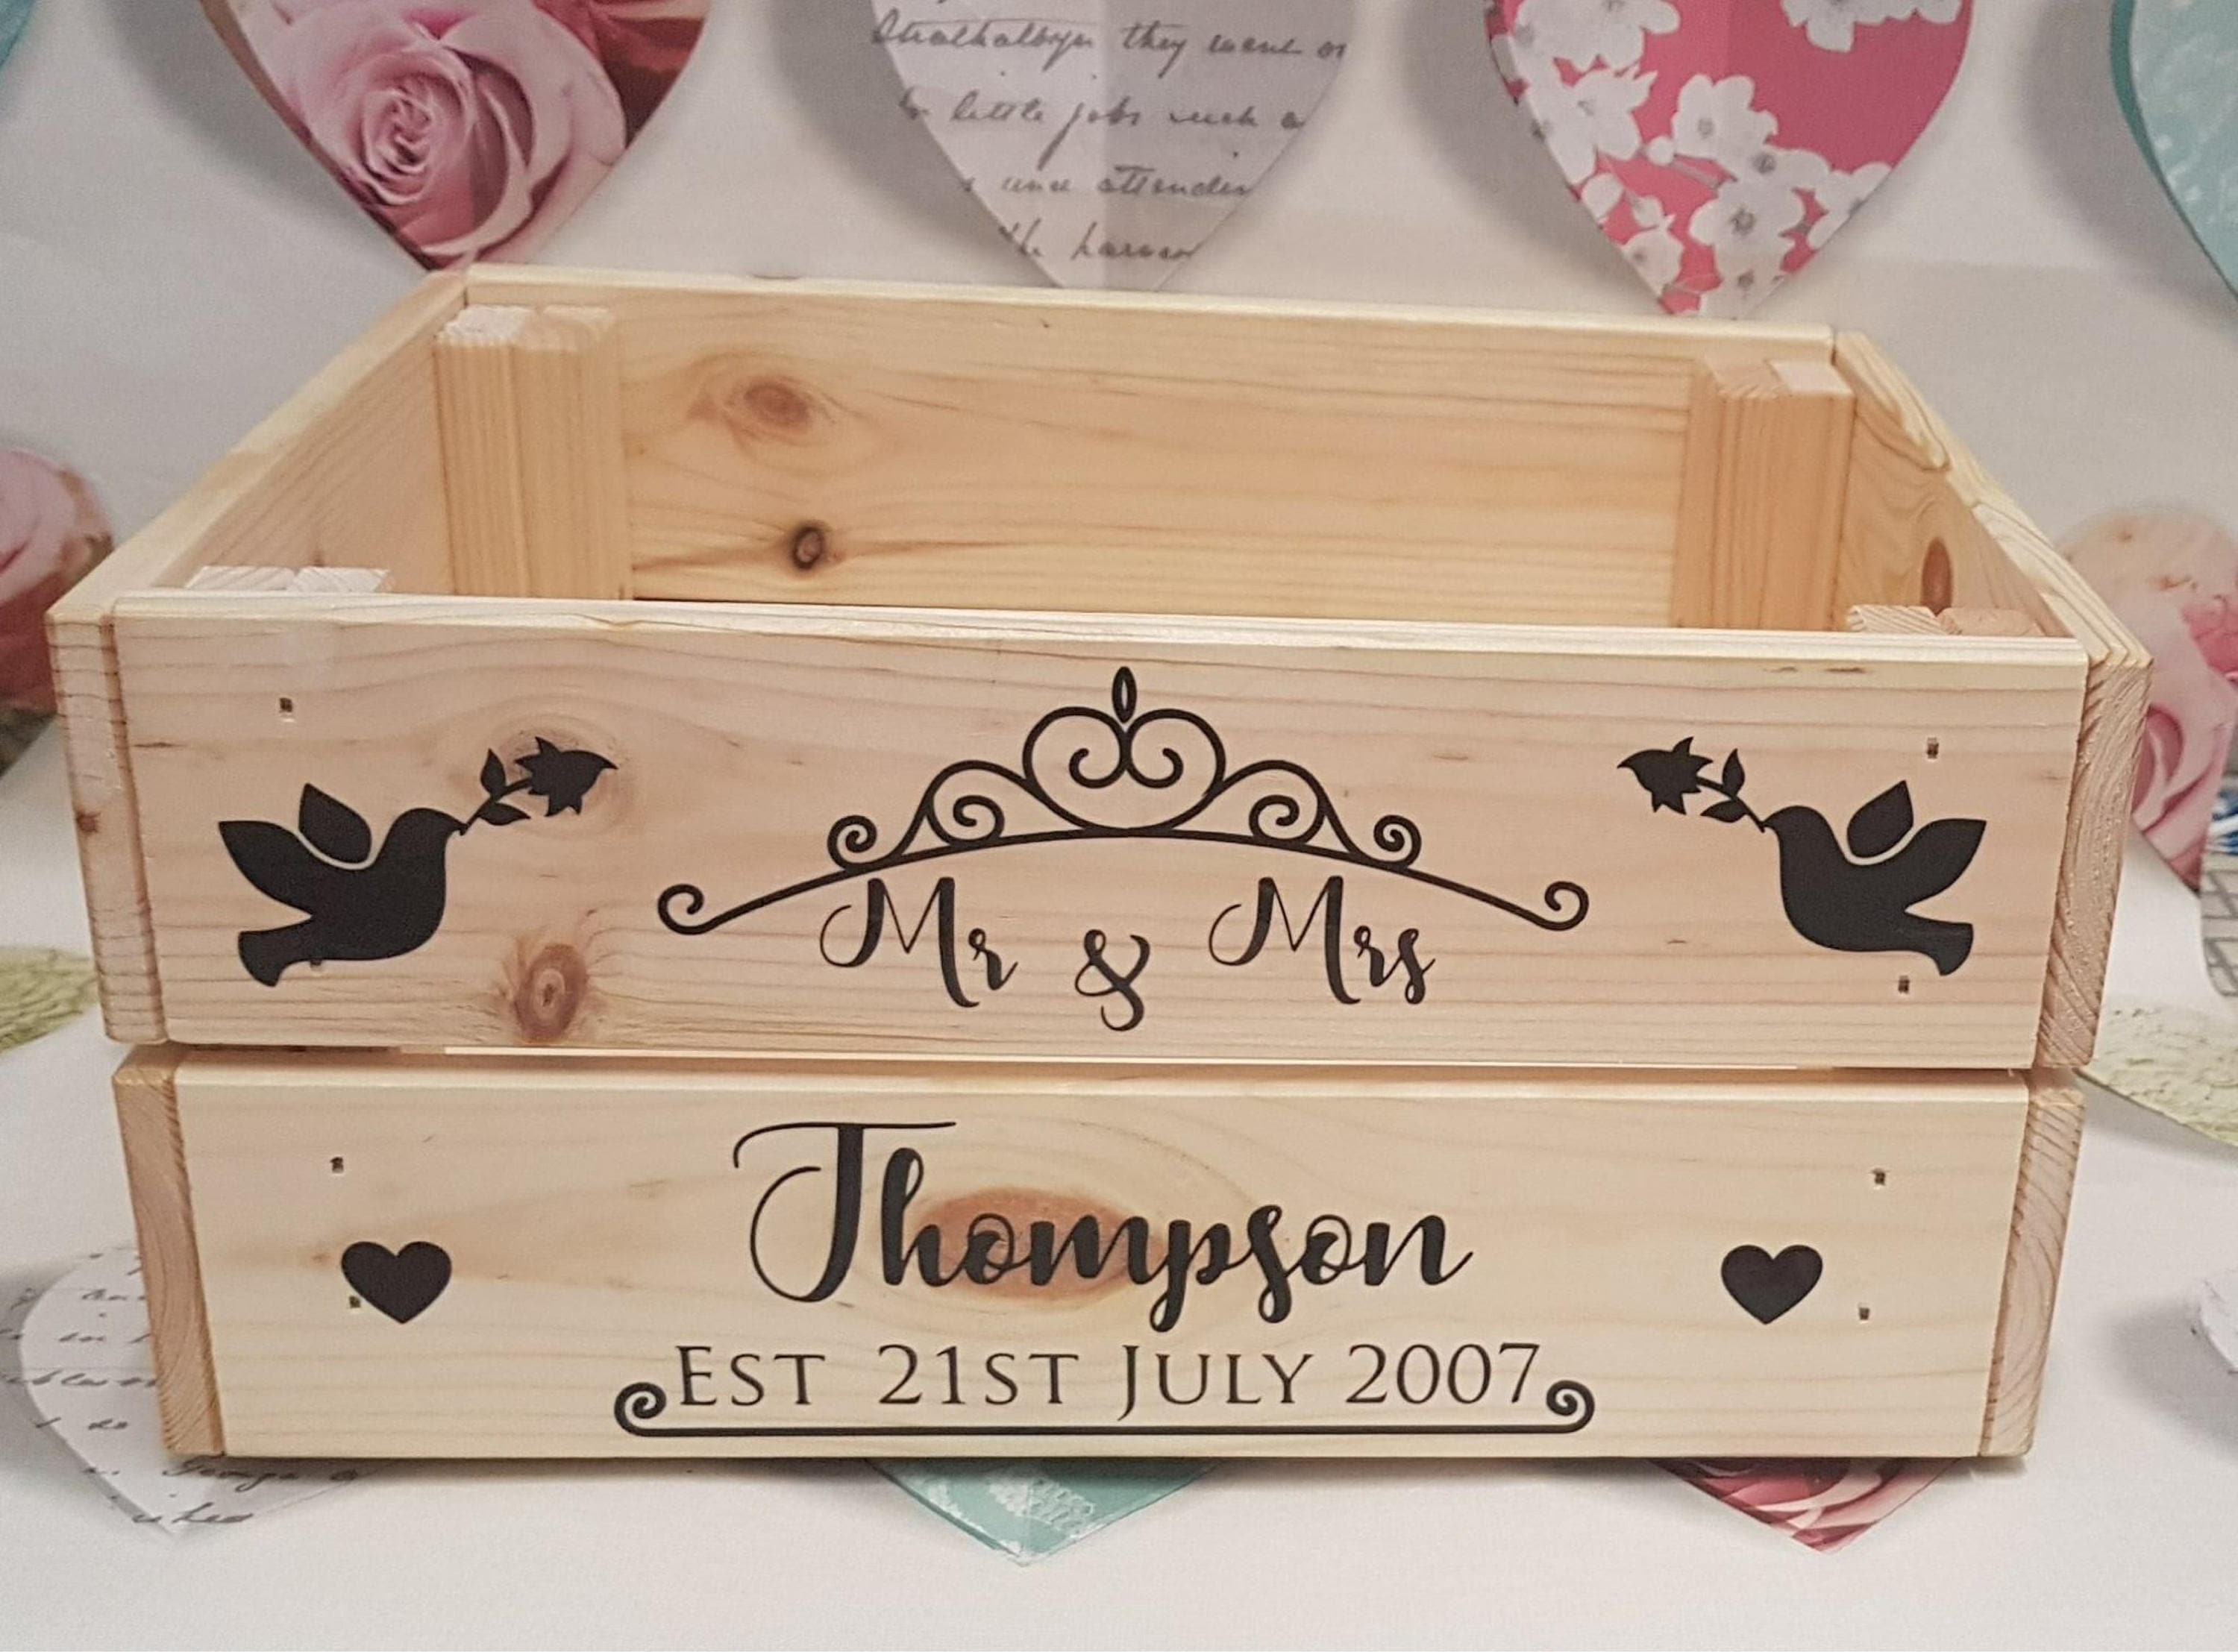 personalised crate, toy box, storage box, wooden crate, story book box,  wedding day keepsake, toy box, toy storage, home storage